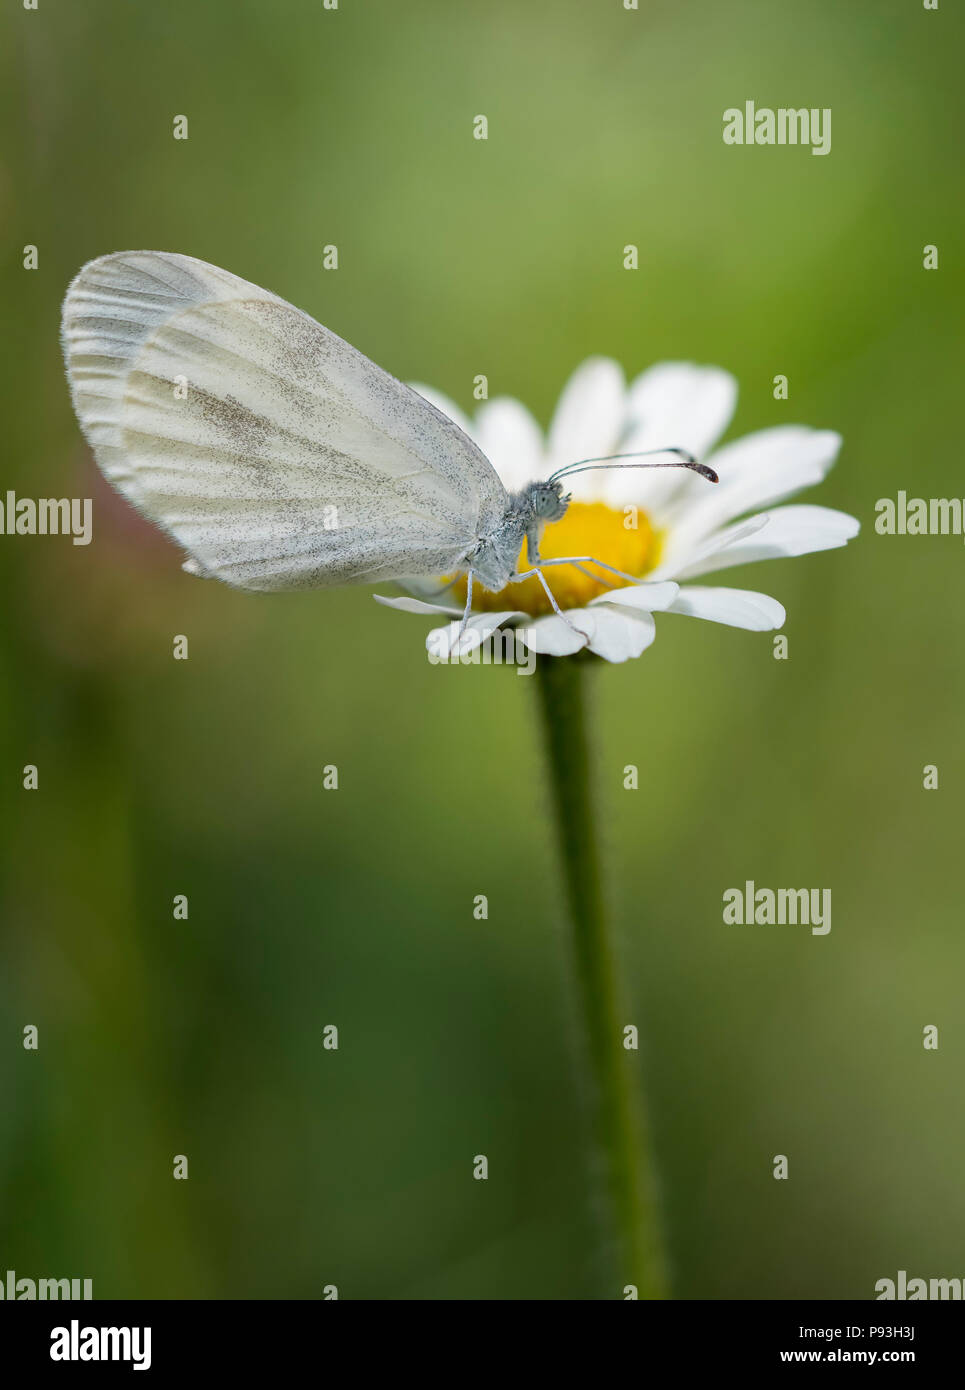 White alpine butterfly - Stock Image